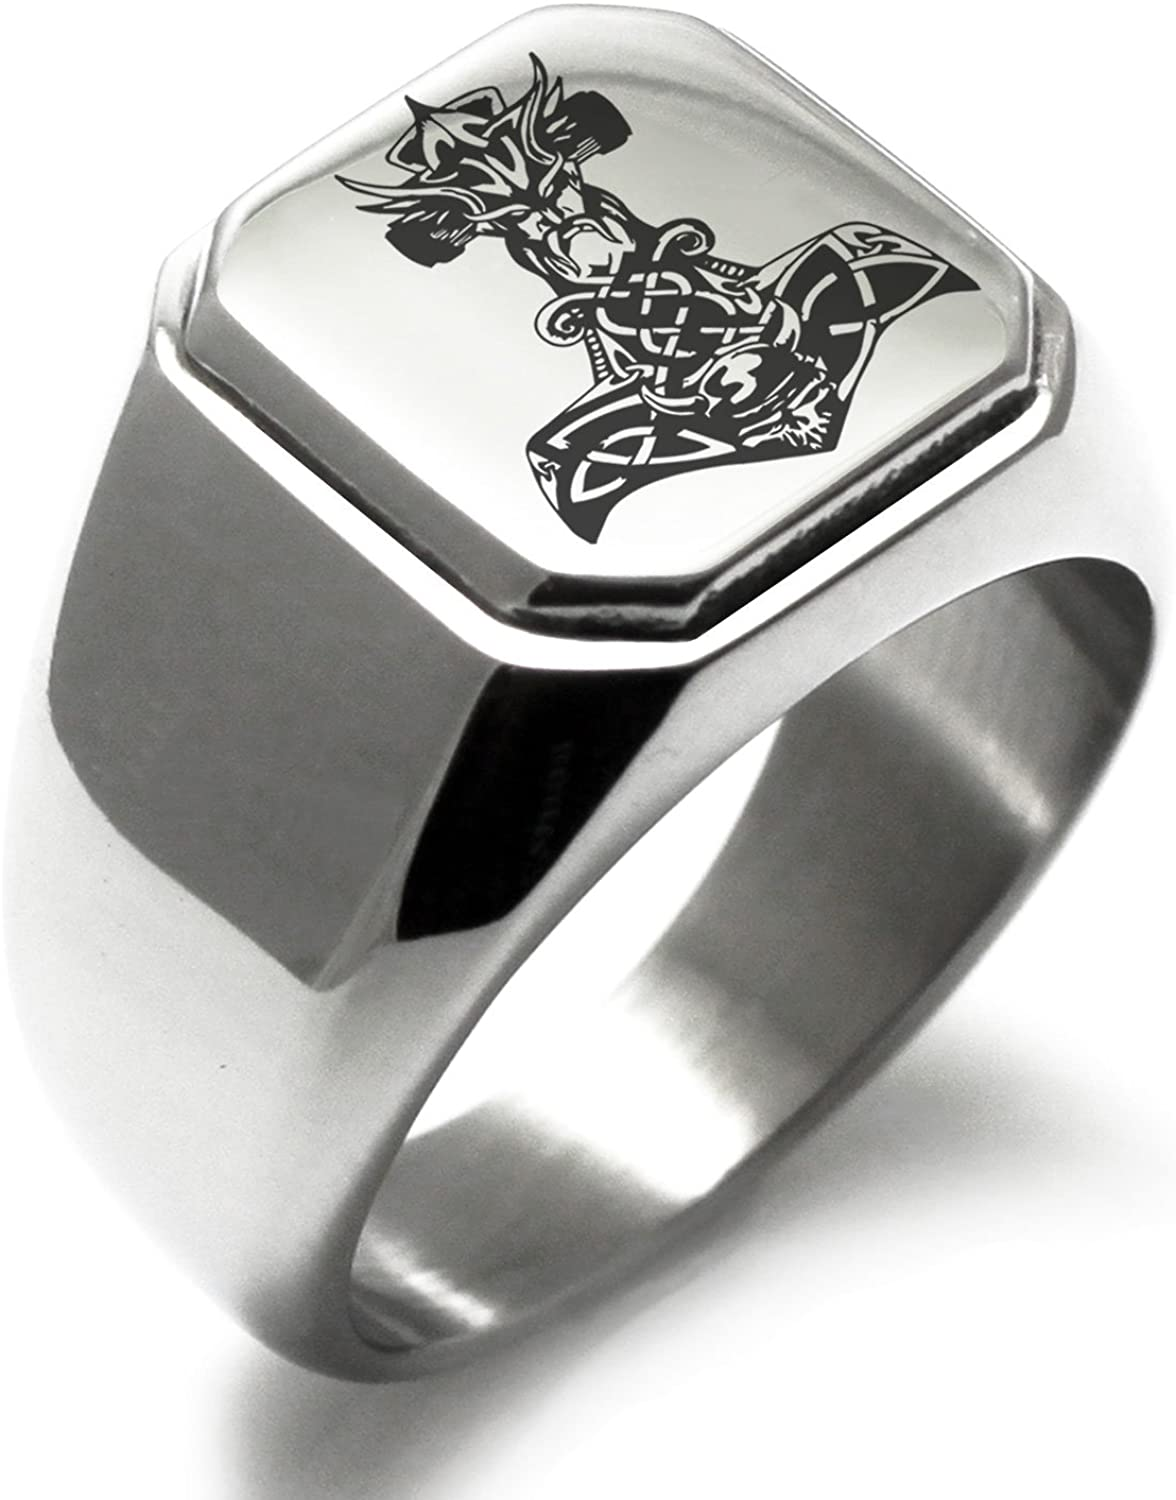 Stainless Steel Asgard Mjolnir Thor's Hammer Viking Norse Symbol Square Flat Top Biker Style Polished Ring